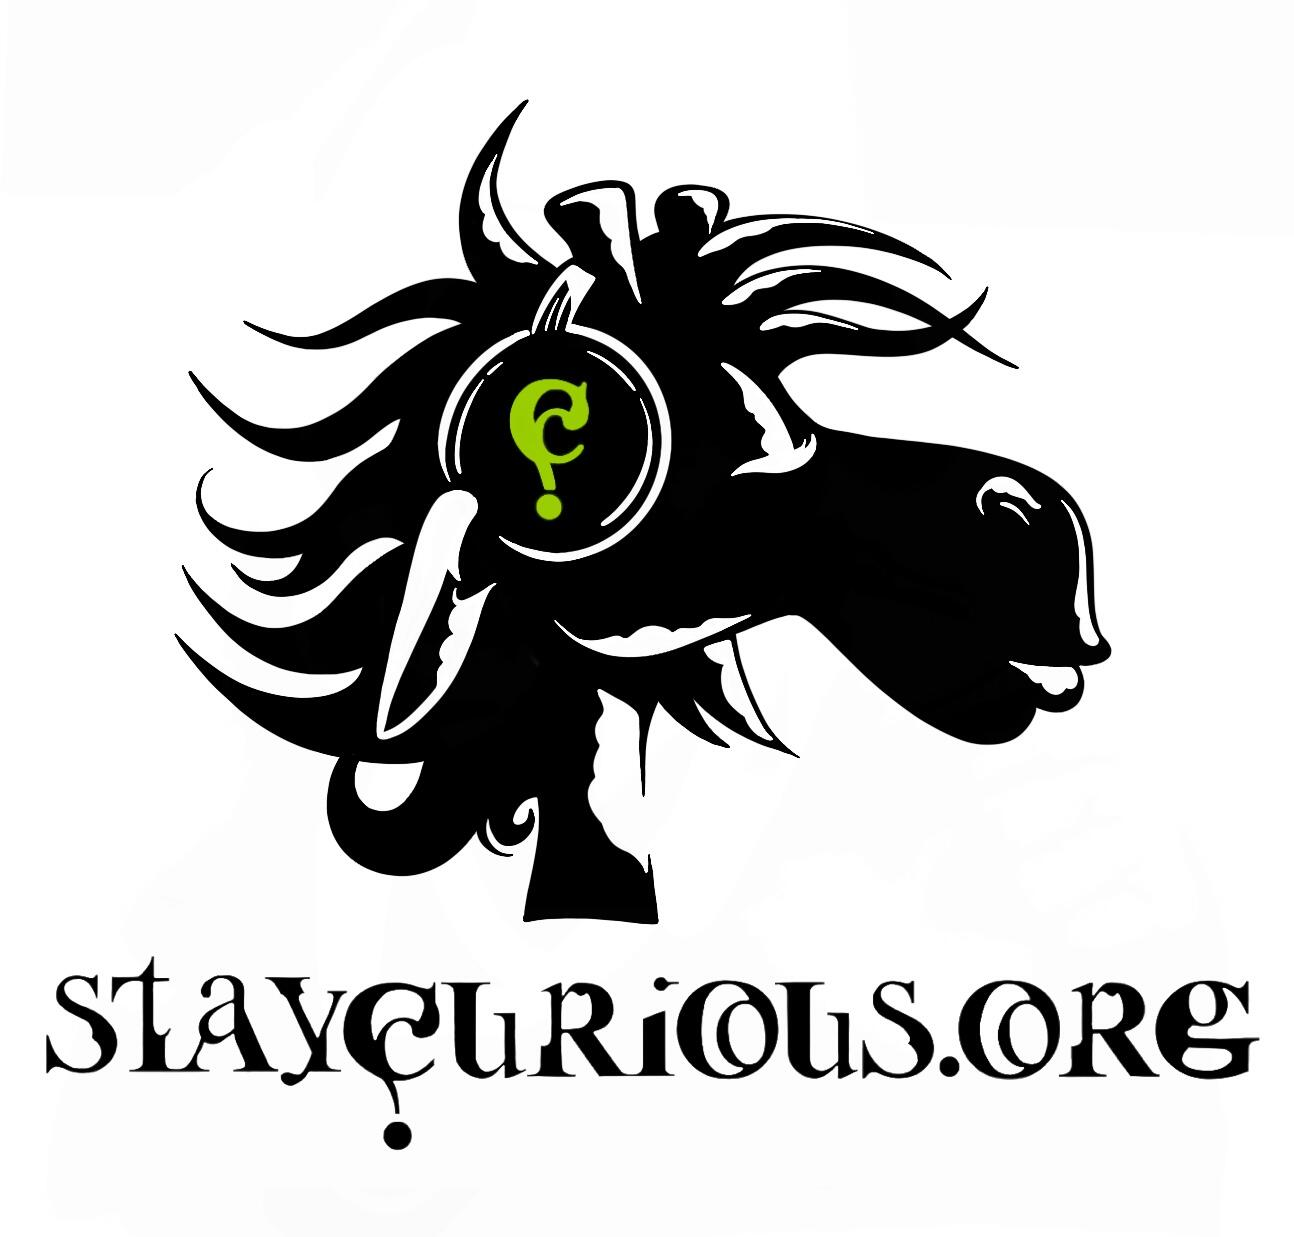 staycurious.org Podcast